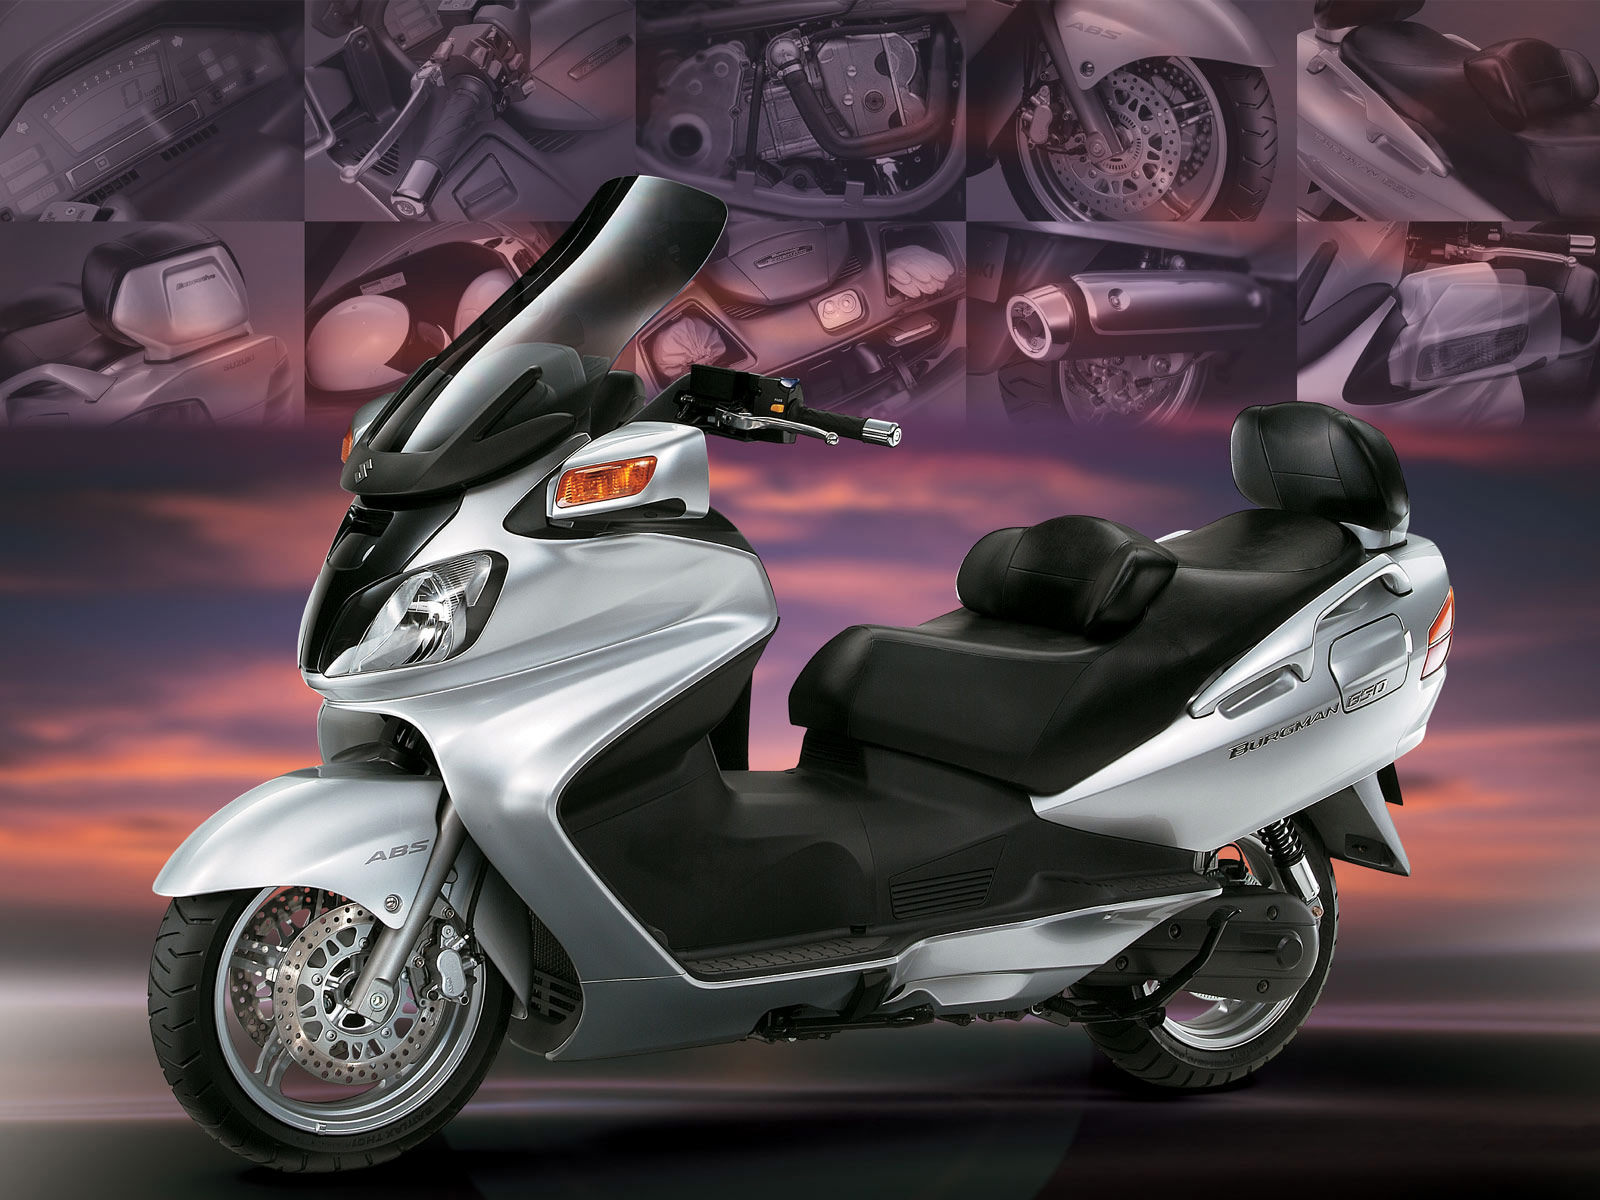 2004 suzuki 650 burgman scooter pictures accident lawyers. Black Bedroom Furniture Sets. Home Design Ideas